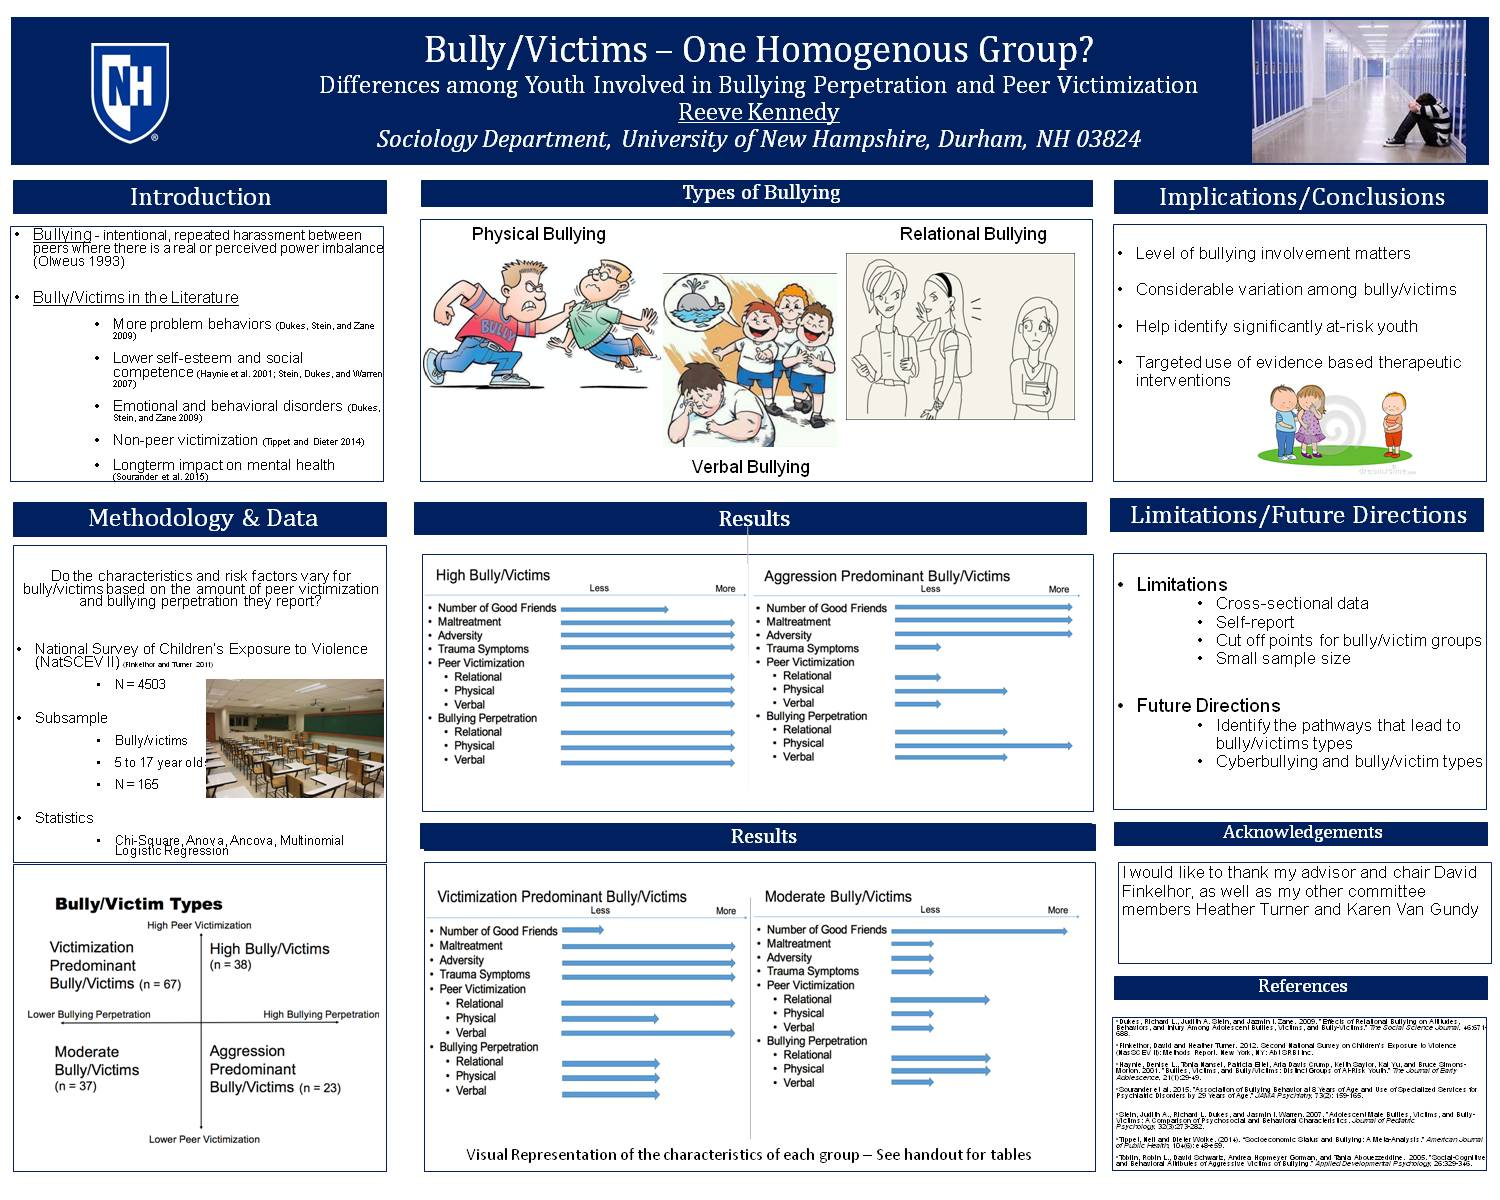 Bully/Victims - One Homogenous Group? Differences Among Youth Involved In Bully Perpetration And Peer Victimization by rsp9